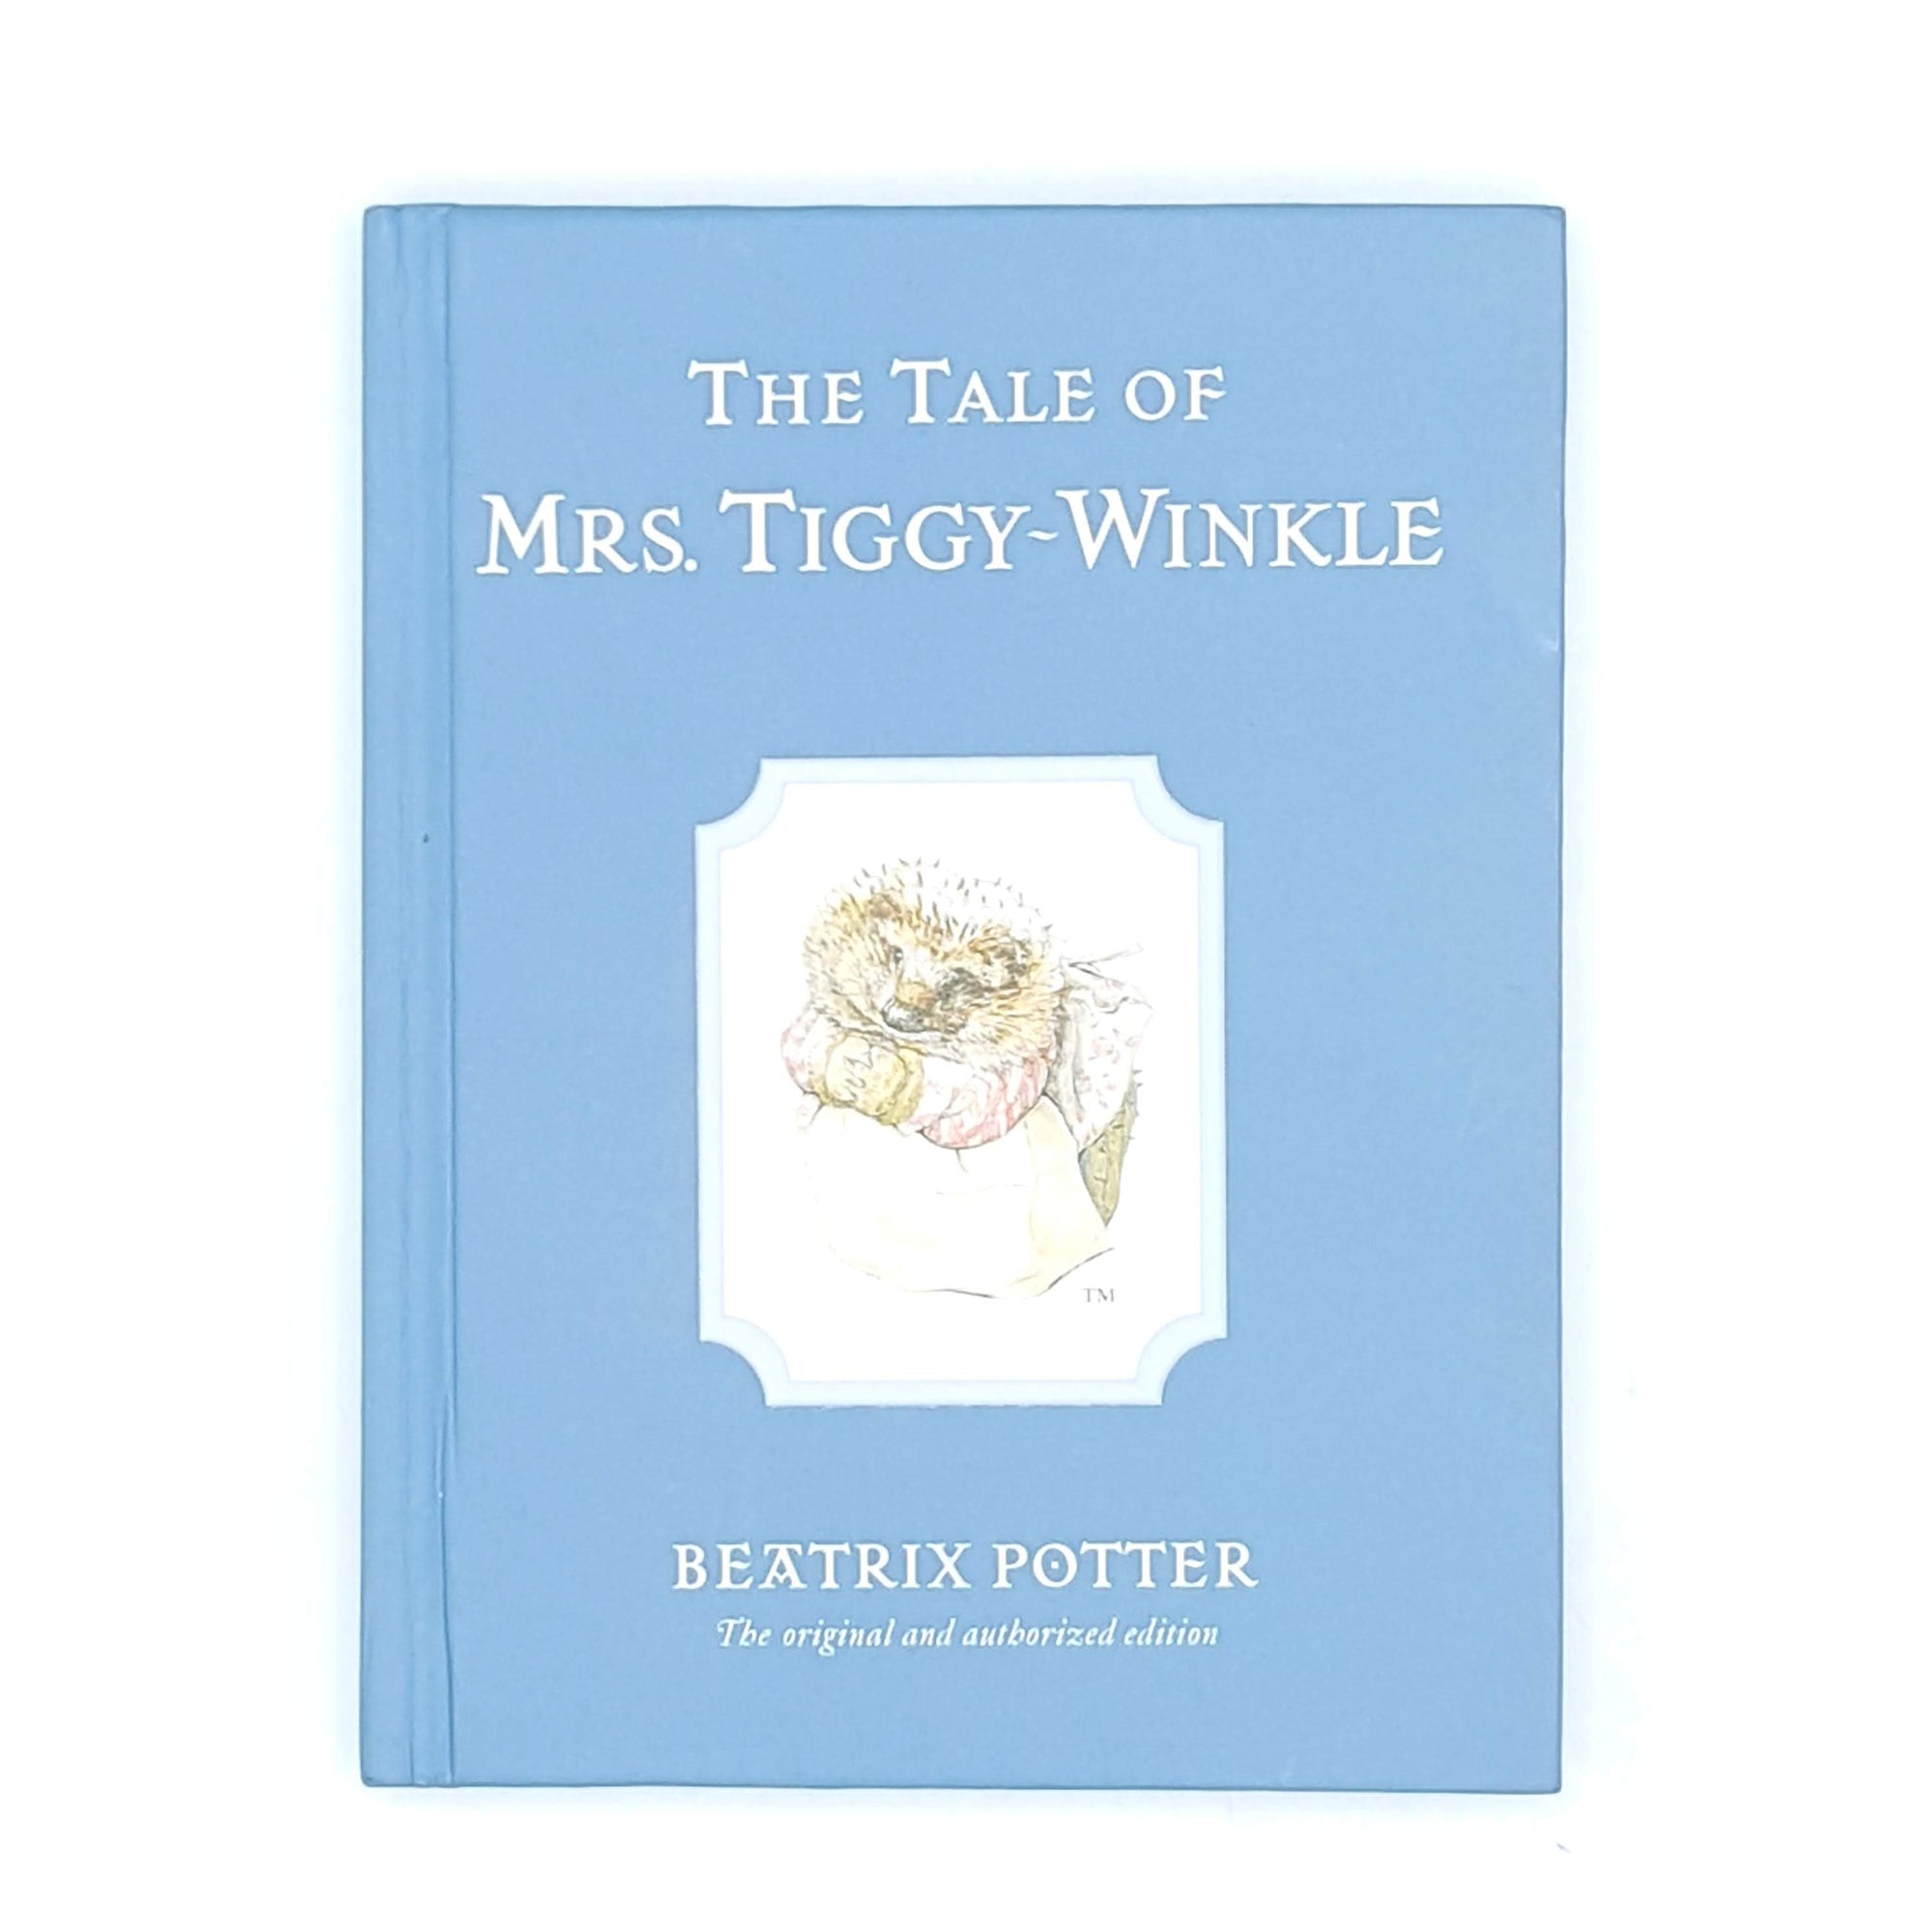 Beatrix Potter's The Tale of Mrs. Tiggy-Winkle, blue